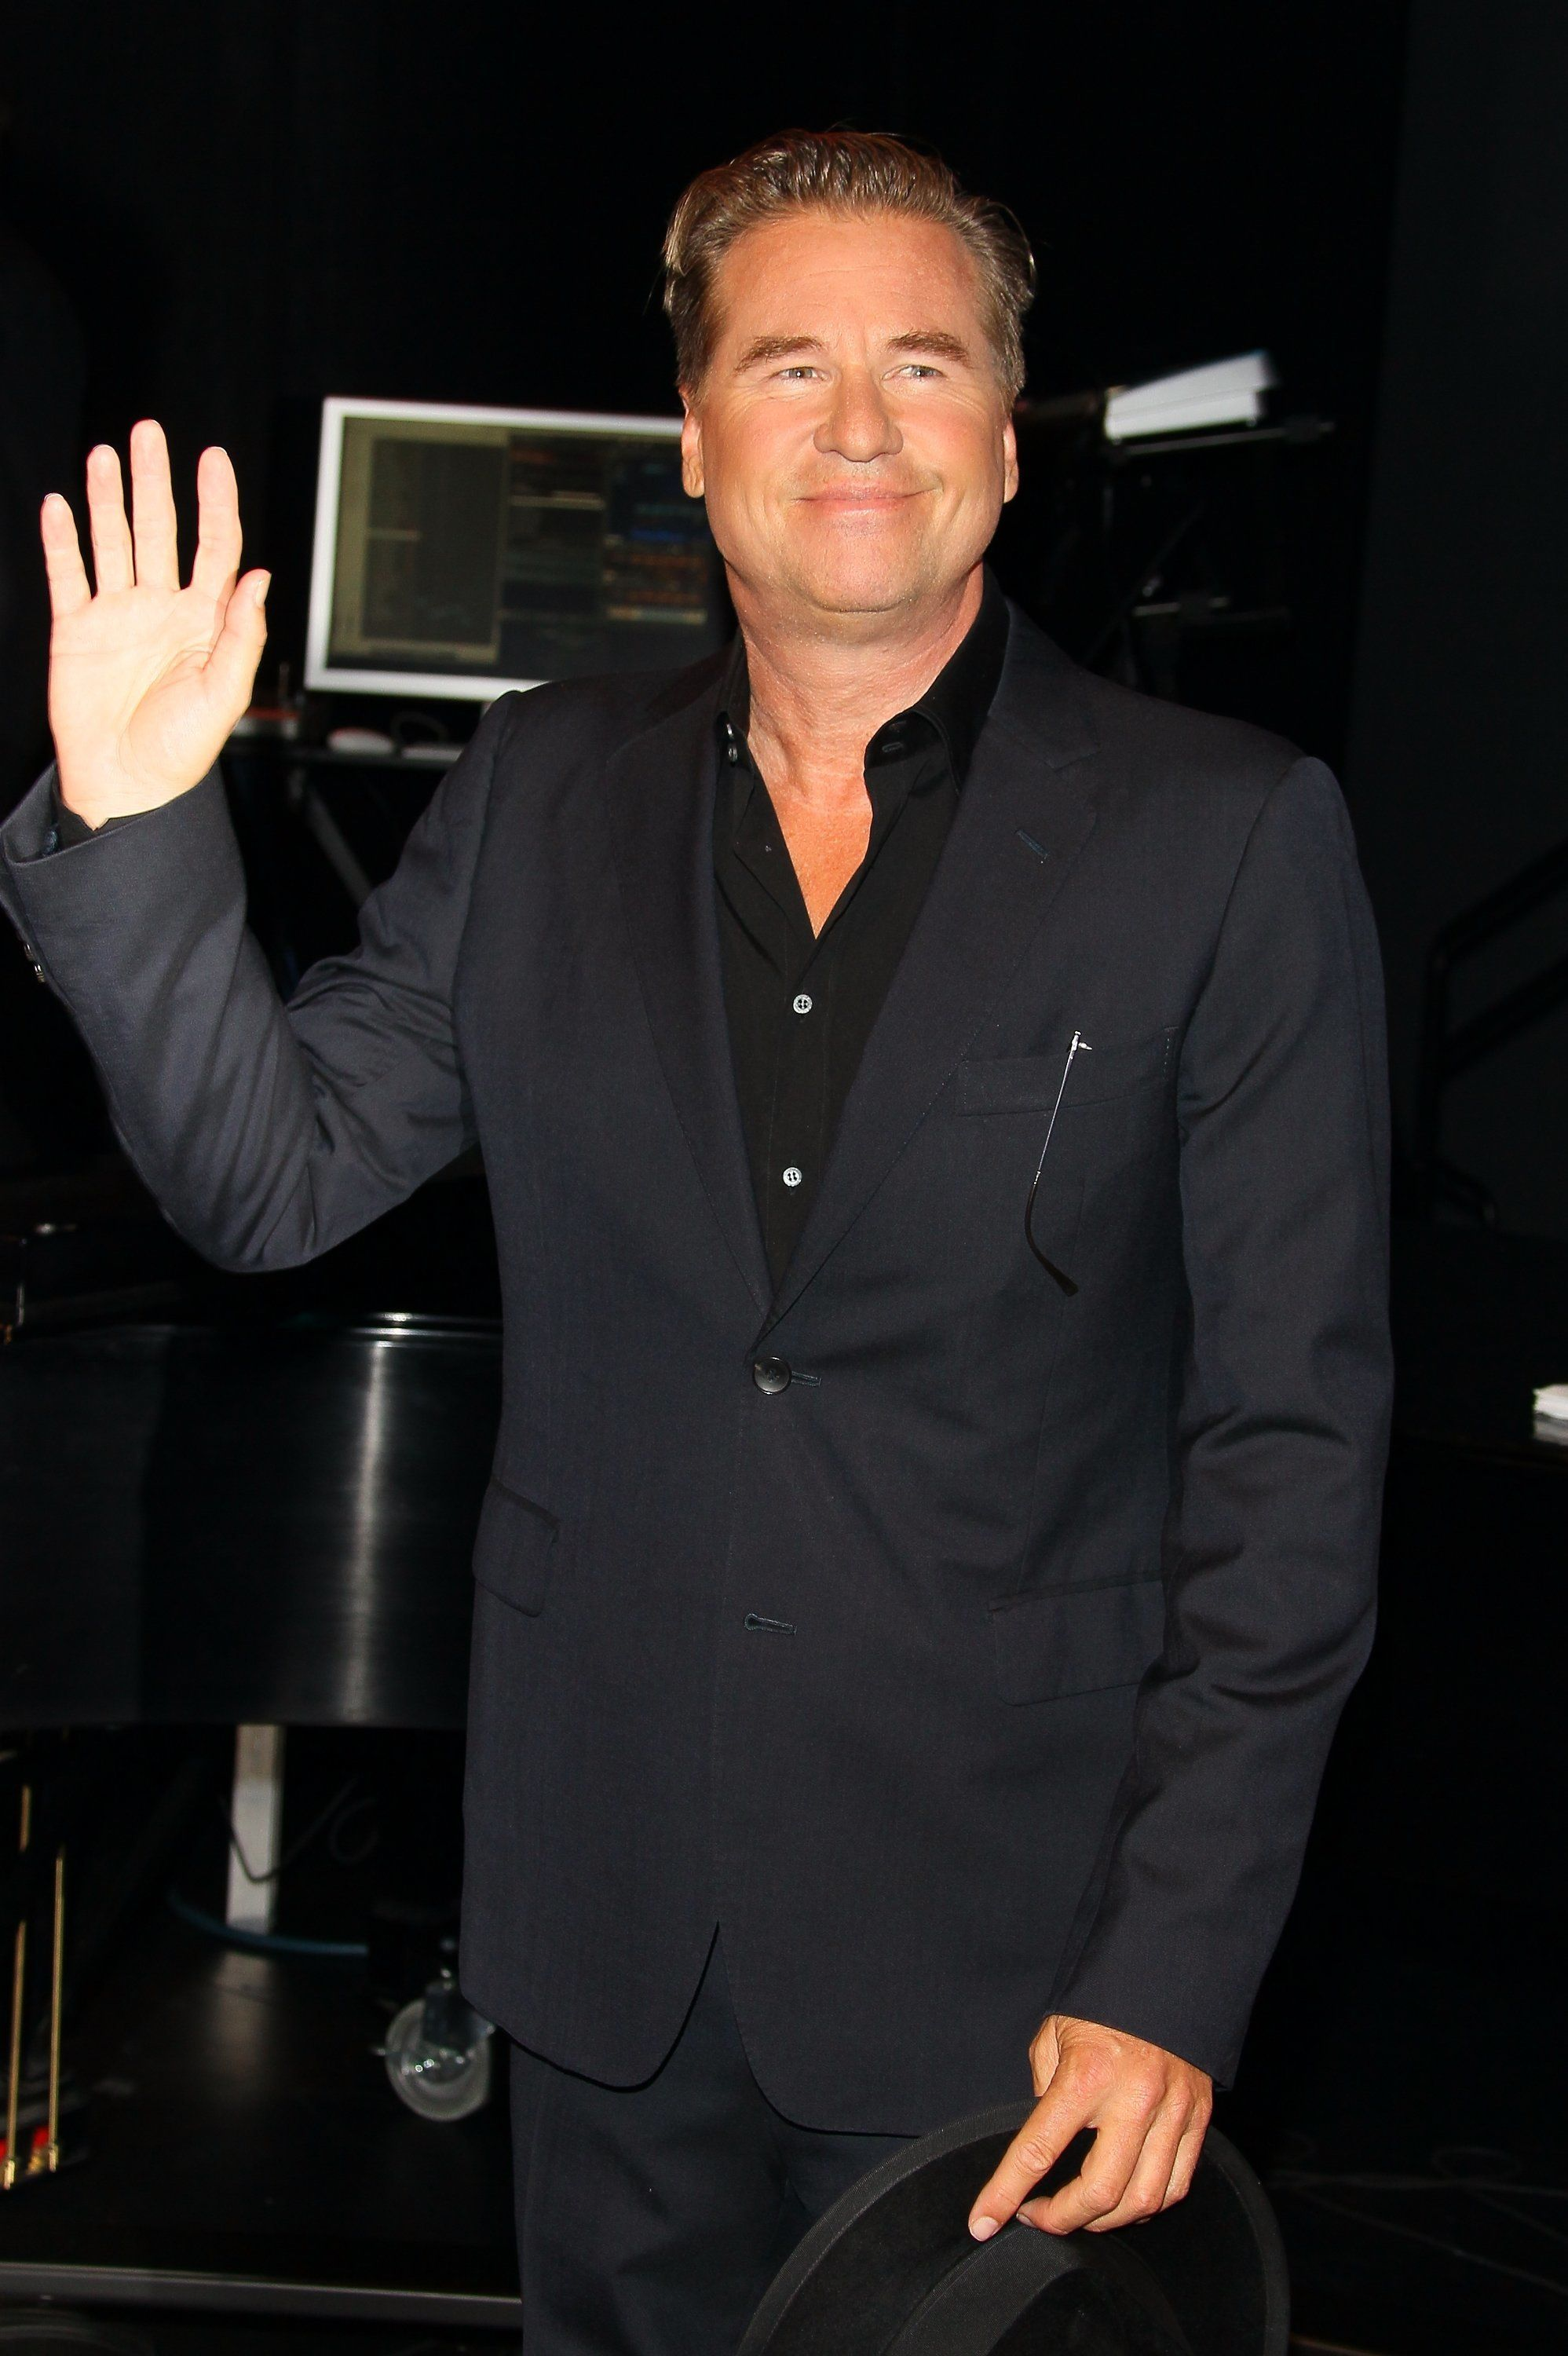 SANTA MONICA, CA - SEPTEMBER 25: Val Kilmer attends the 23rd Annual Simply Shakespeare Benefit Reading Of 'The Two Gentlemen Of Verona' at The Broad Stage on September 25, 2013 in Santa Monica, California. (Photo by JB Lacroix/WireImage)